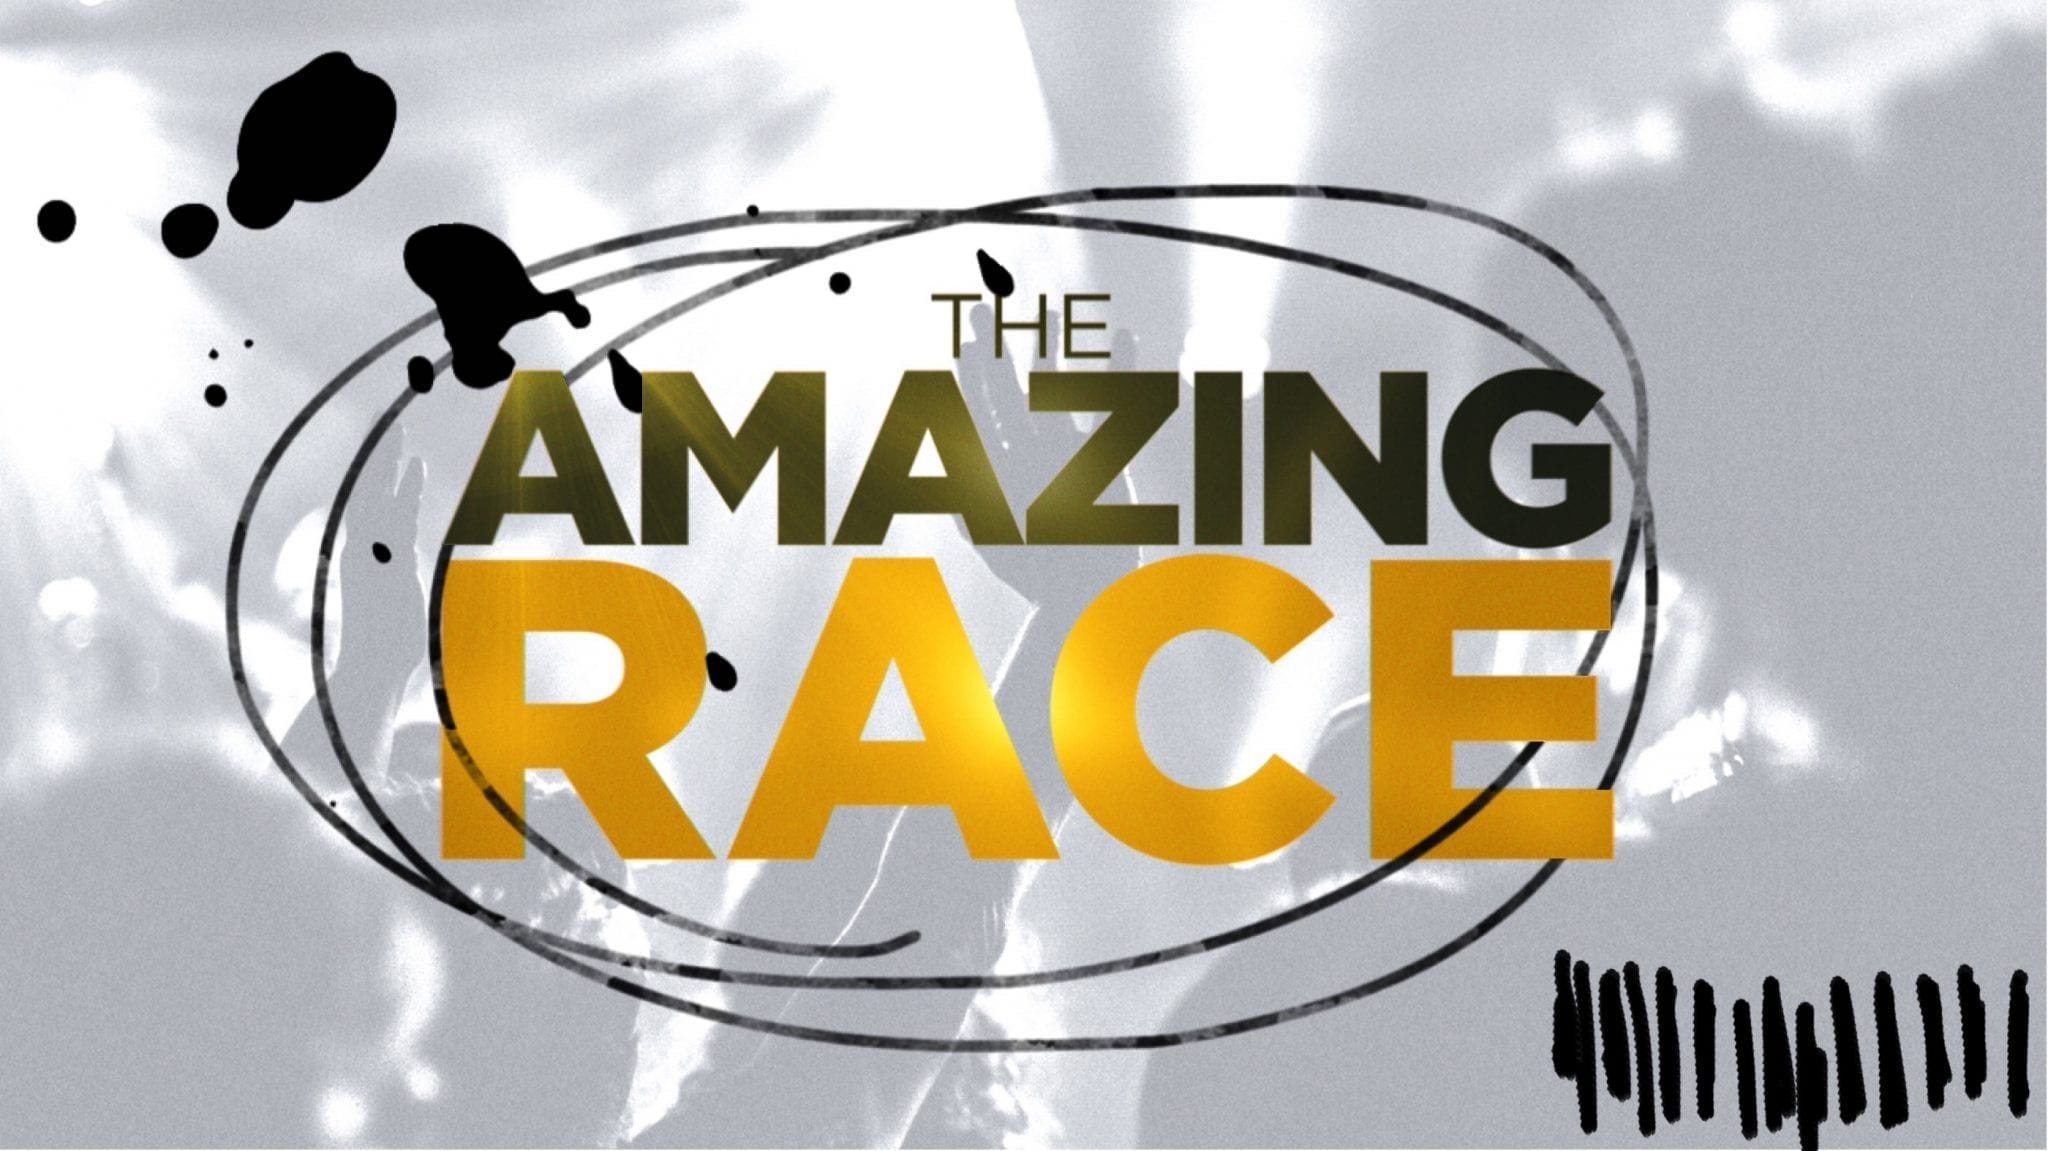 The Amazing Race Pt. 2 – Run Your Own Race